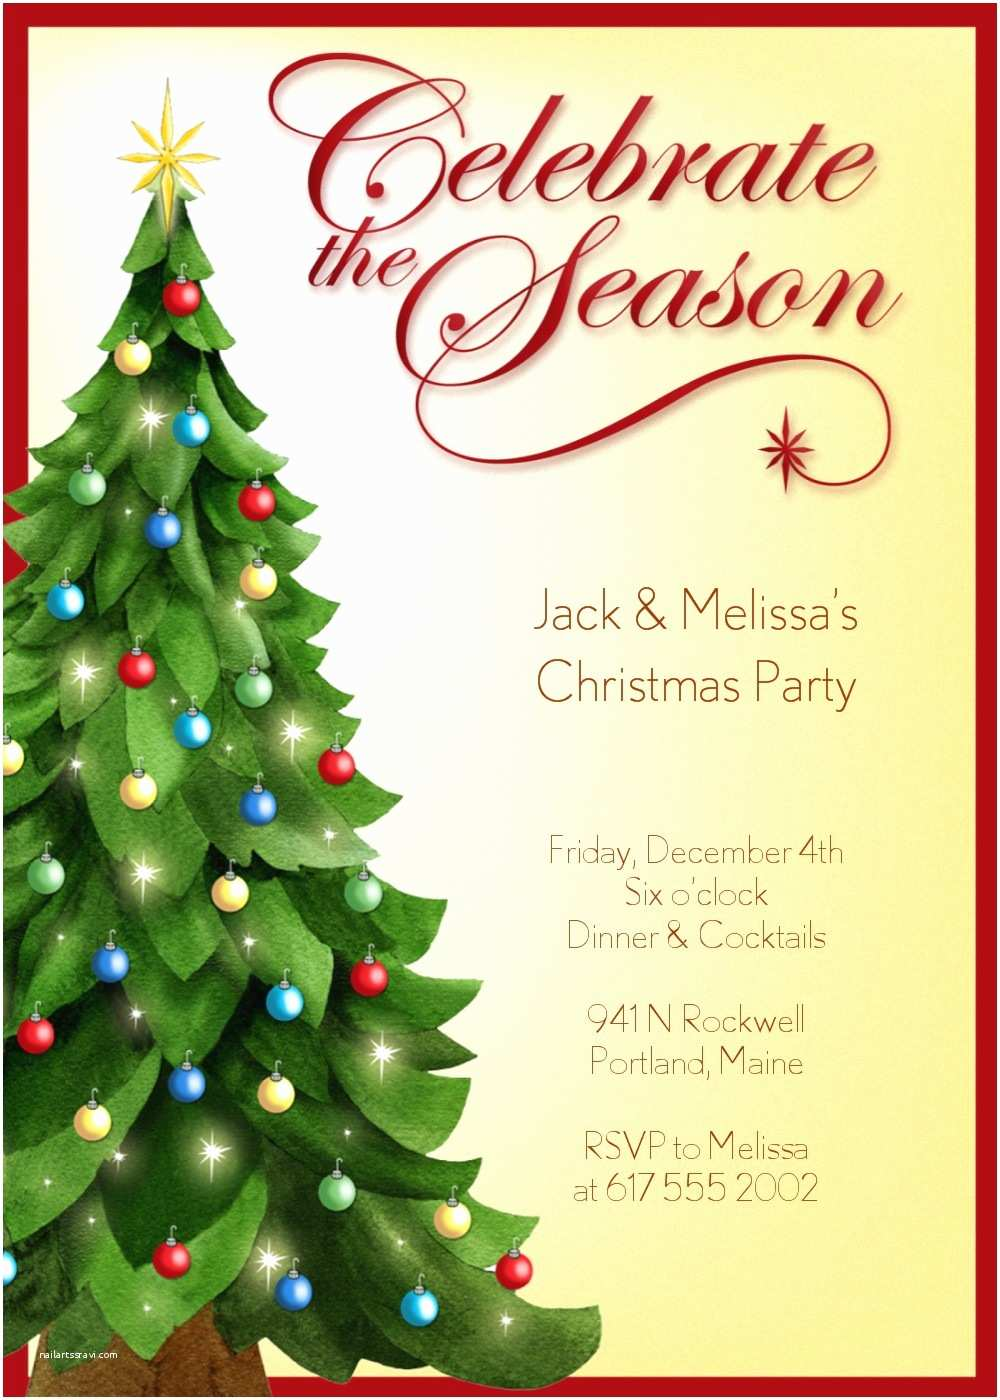 Sample Christmas Party Invitation Party Invitations Christmas Party Invitation Template